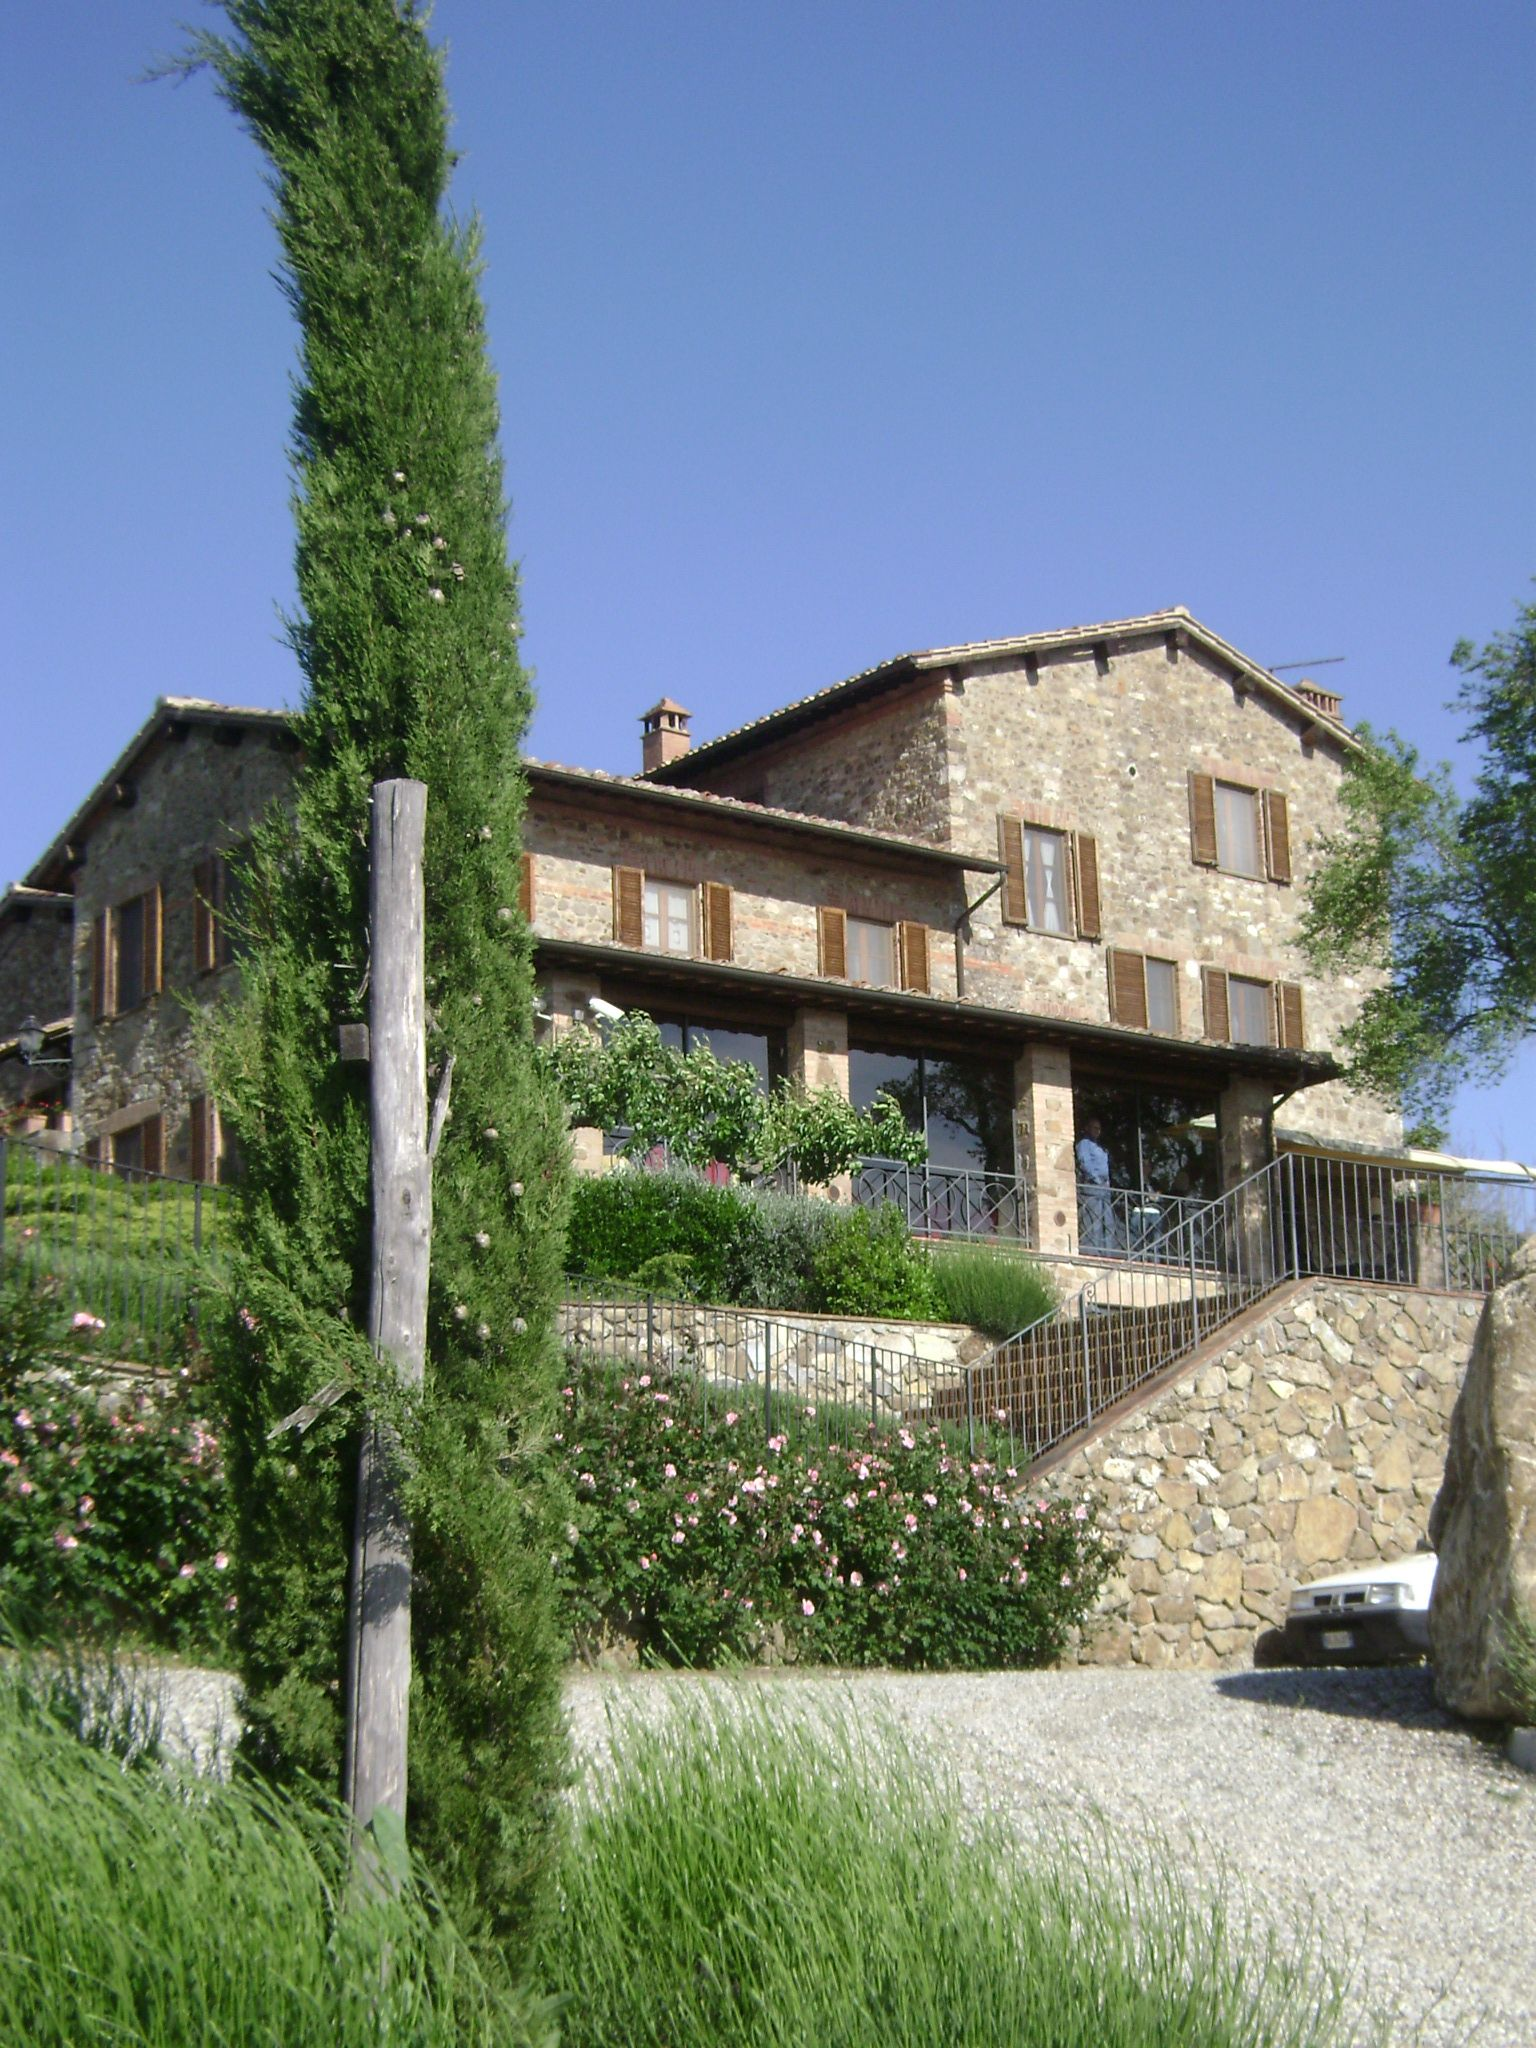 Seravalle in Chianti (Vagliagli) lived here for a week